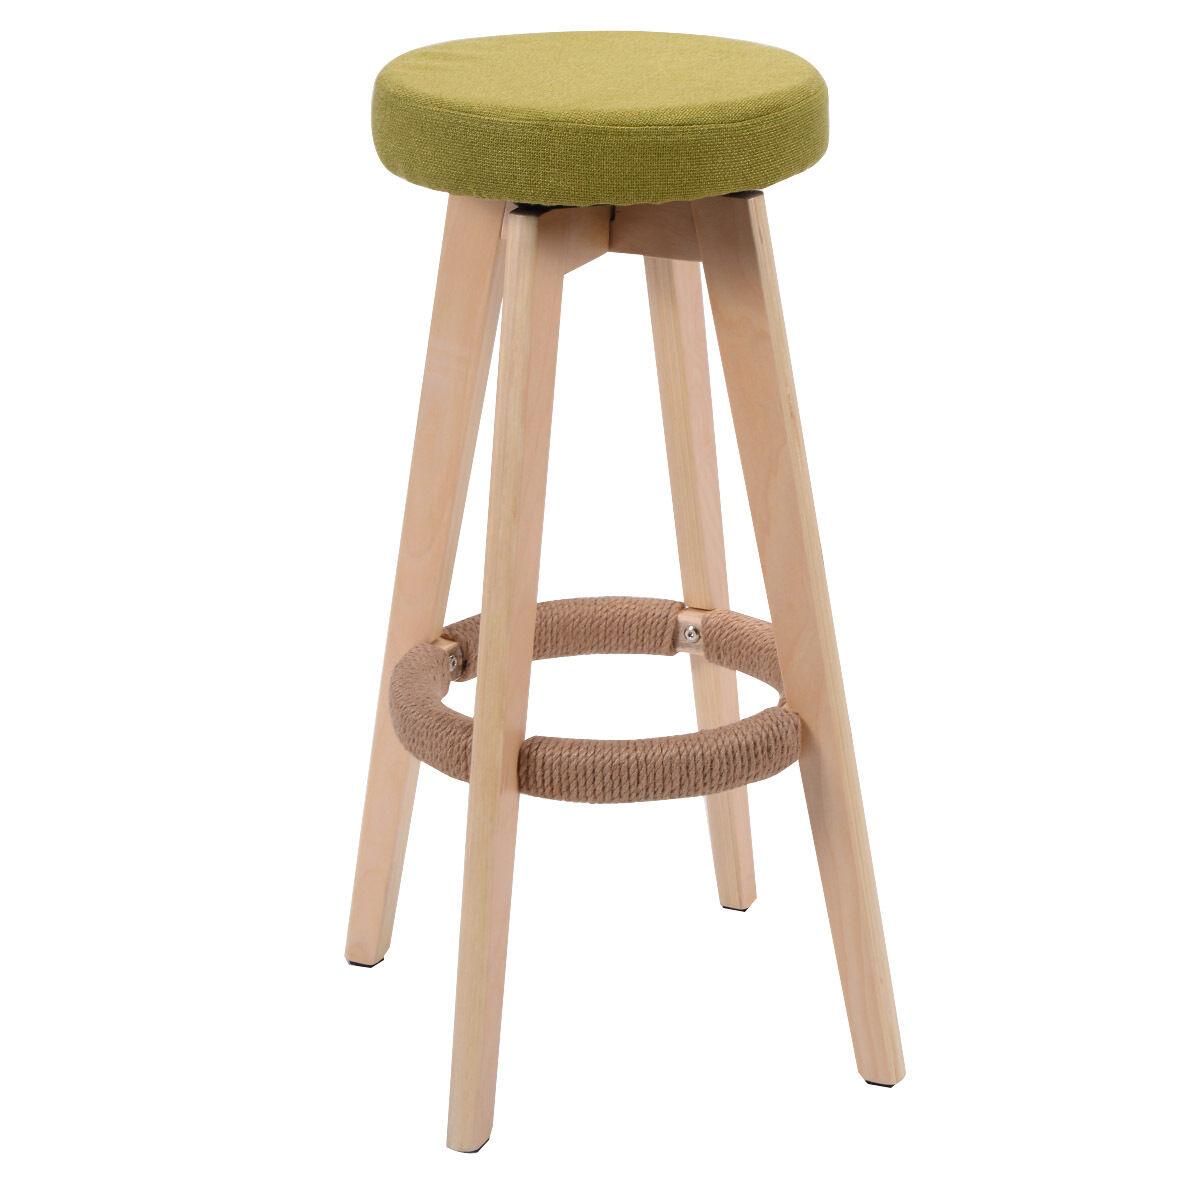 Wooden Furniture Stools ~ Round wooden chair linen bar stool dining counter